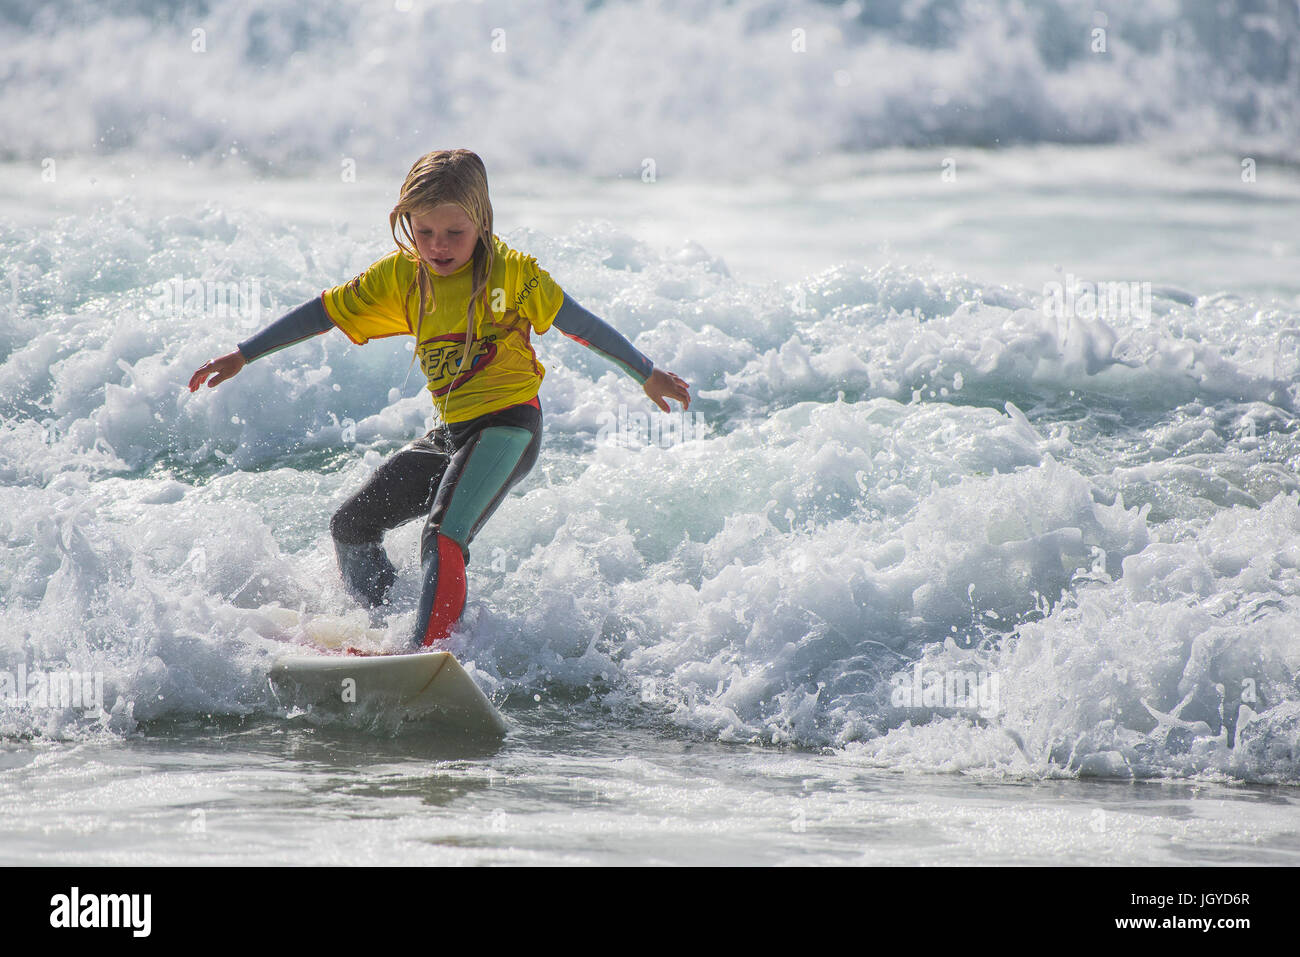 Surfing UK. Surfing child wave. An eight year old surfer competing in the UK Schools Surf Championship. - Stock Image